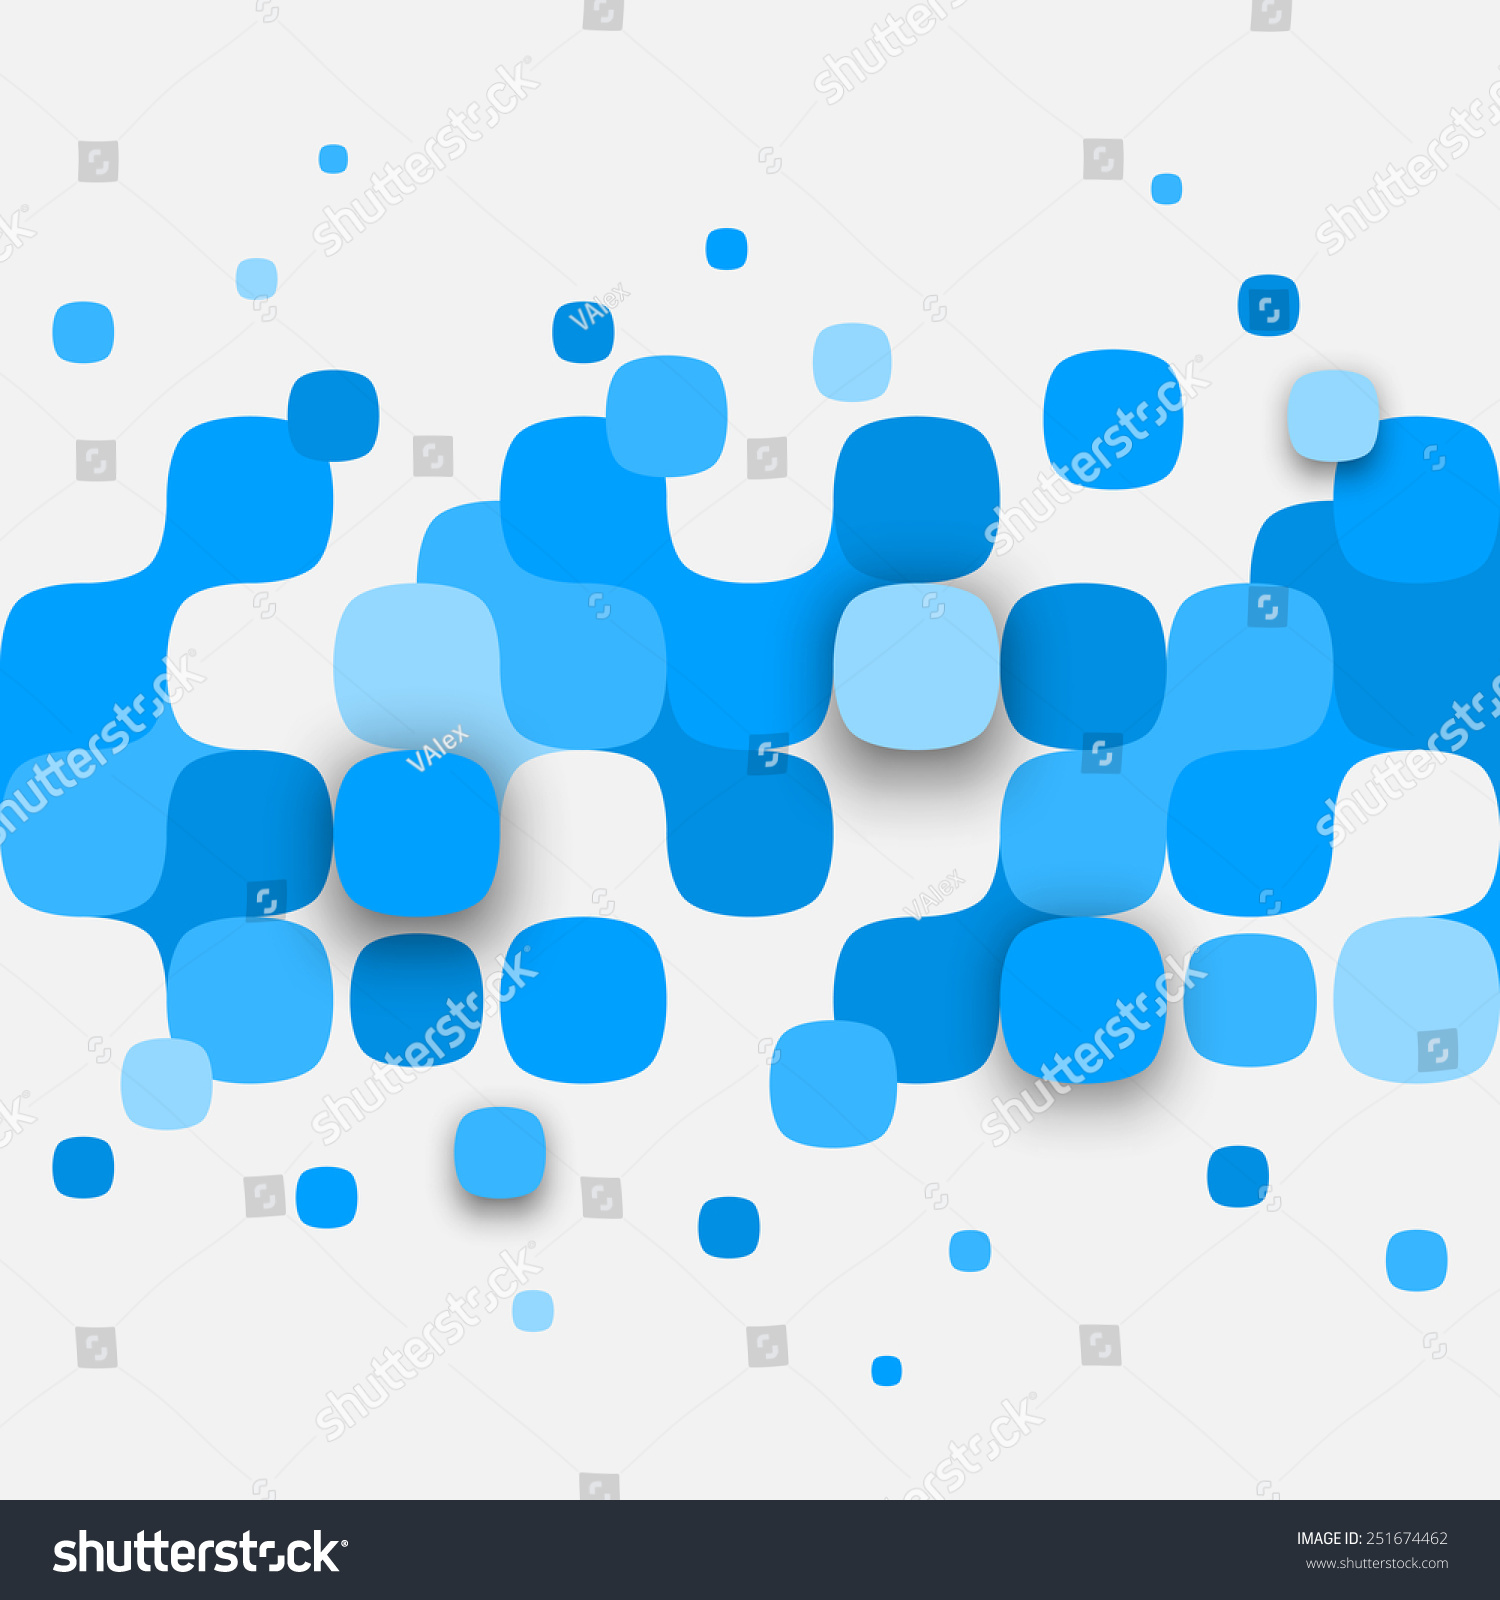 Vector Background Illustration Abstract Texture Squares